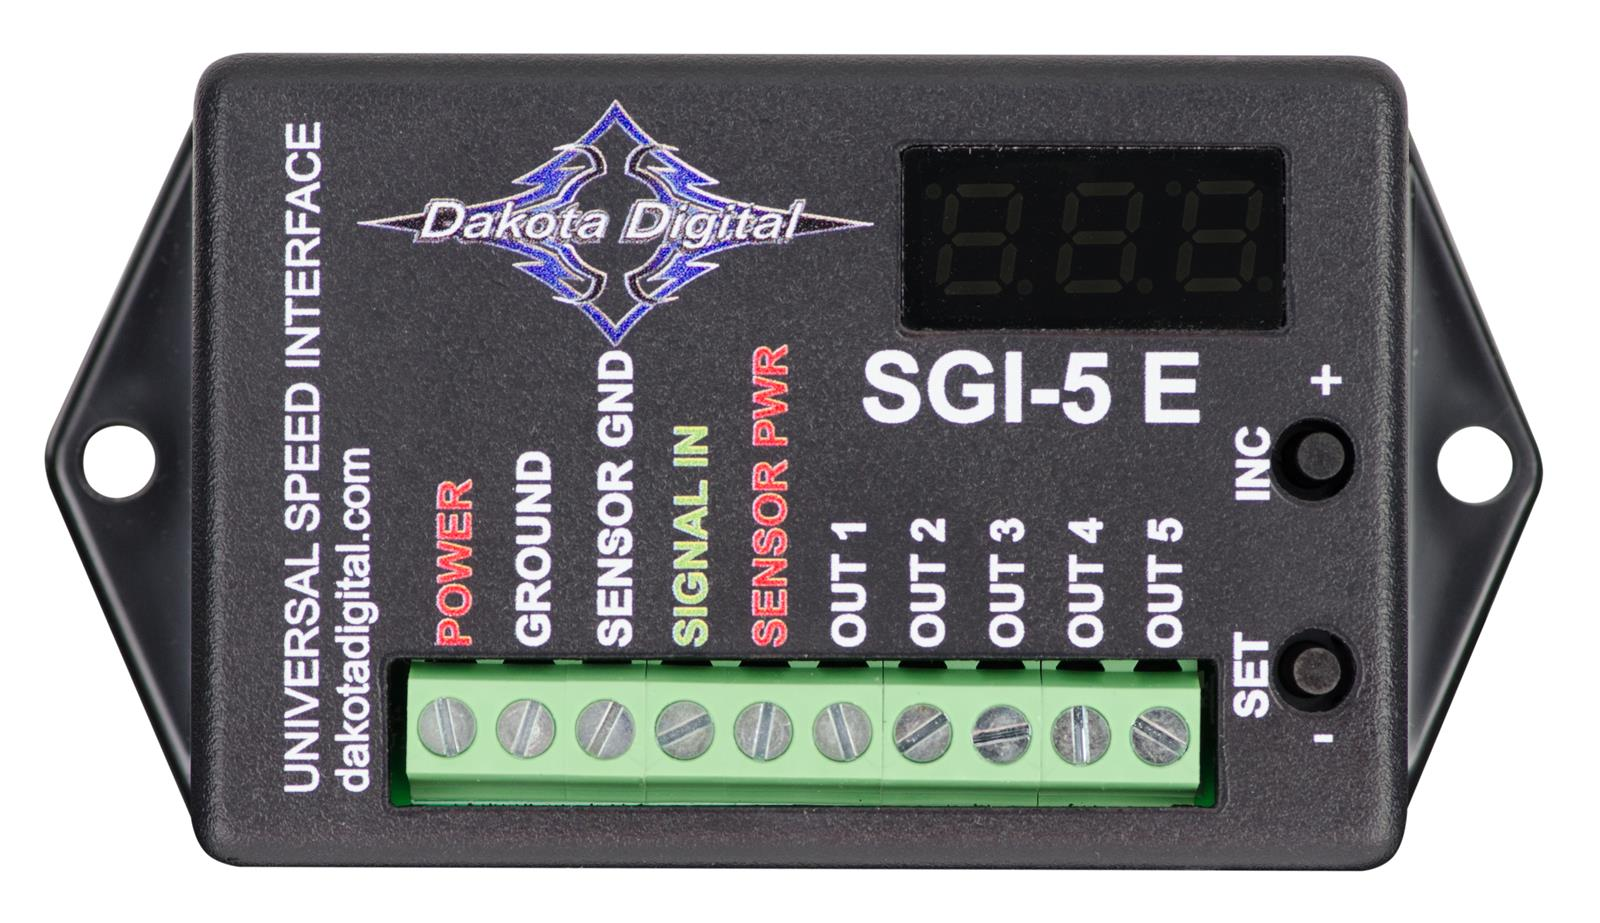 dak sgi 5e_xl dakota digital sgi 5e universal speedometer signal interfaces sgi dakota digital gss-2000 wiring diagram at mifinder.co